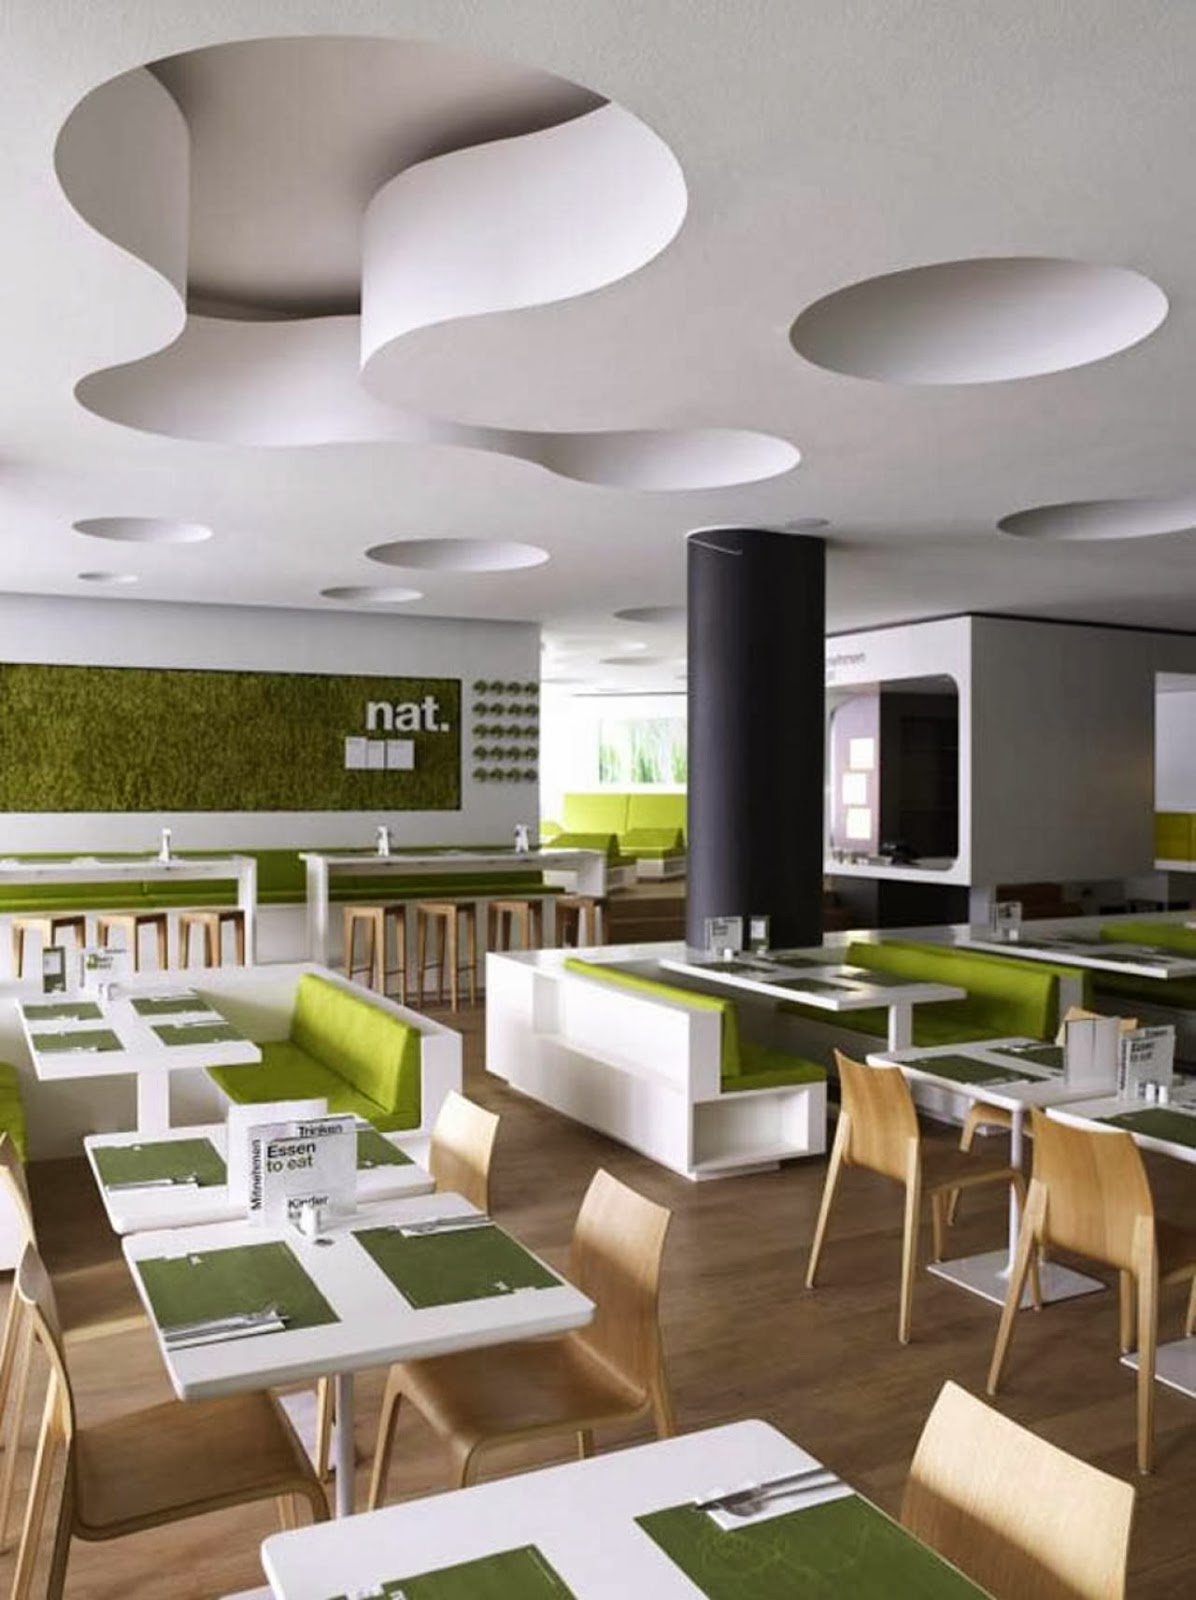 Restaurant Design Concepts Delicious Agony Here Are Restaurant Concept With Minimalist